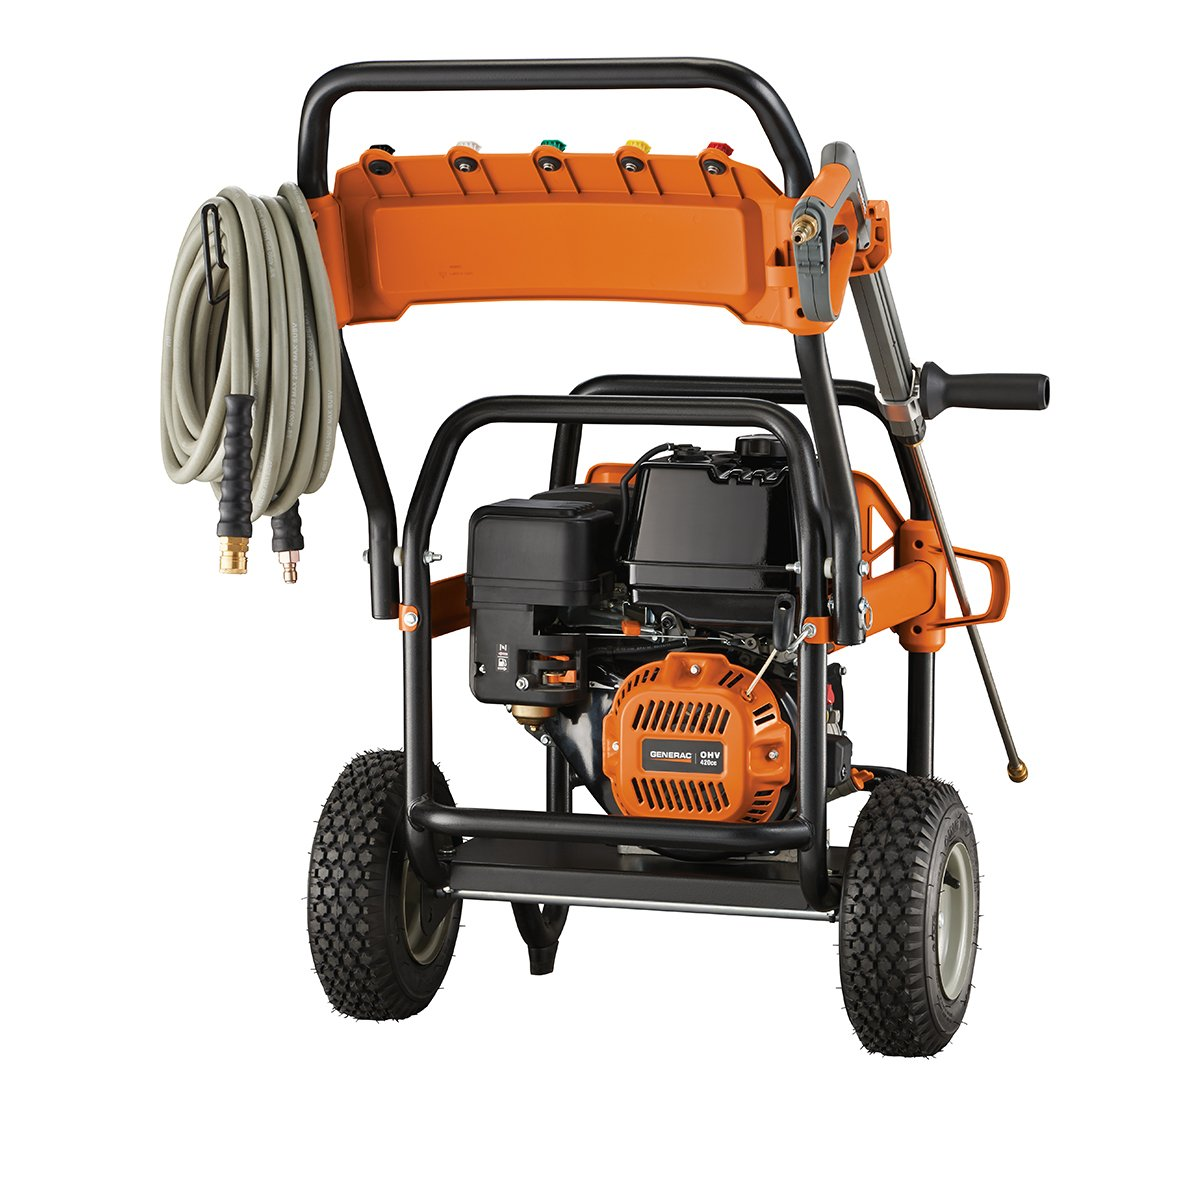 Generac 6565 4 200 Psi 40 Gpm 420cc Ohv Gas Powered Pressure Washer Motor Wiring Diagram Commercial Garden Outdoor